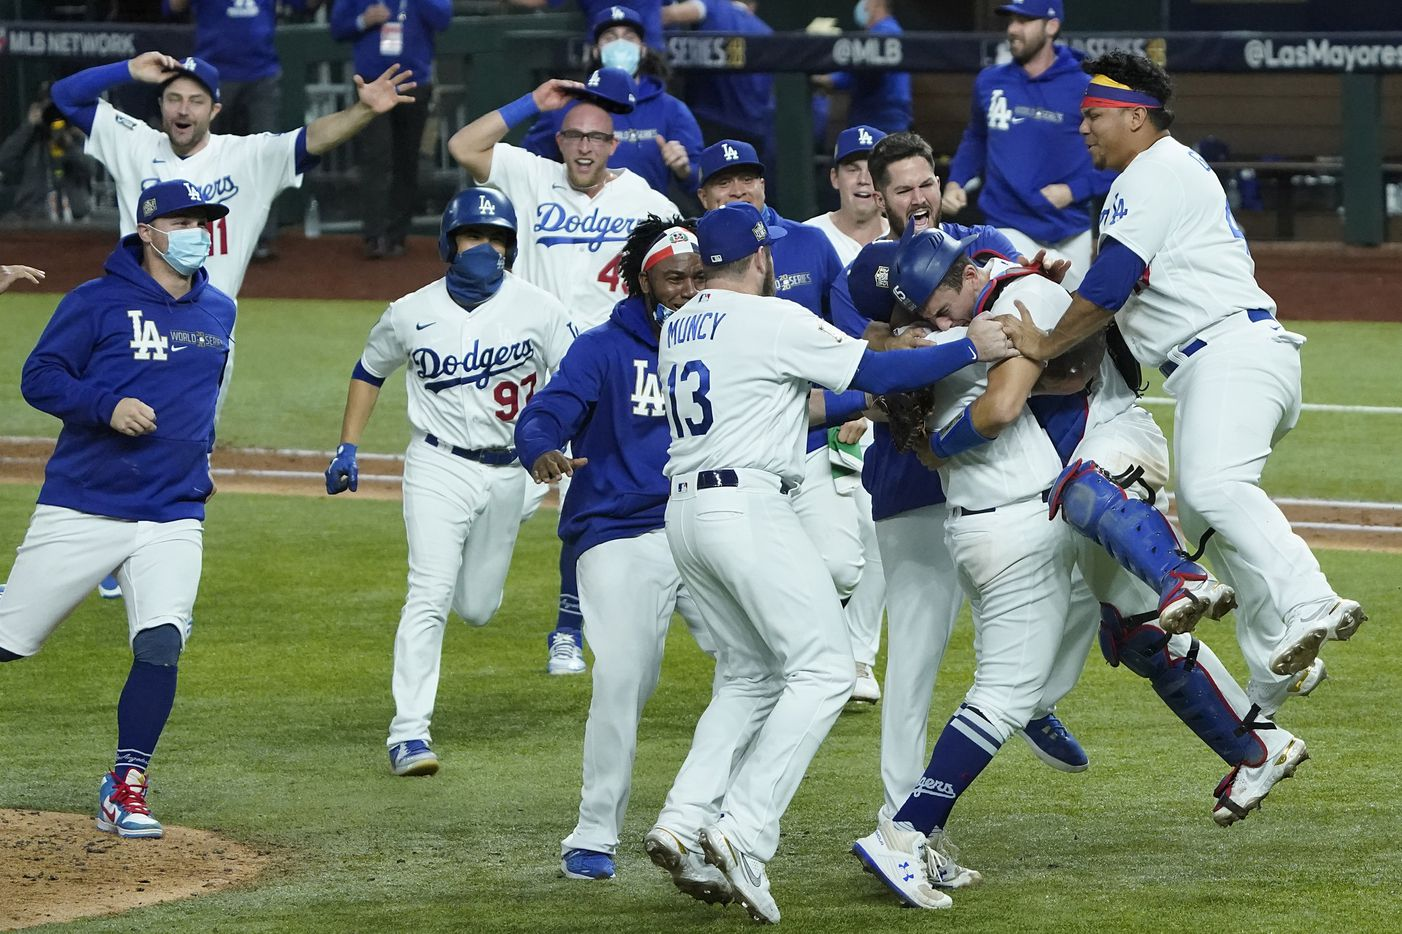 Los Angeles Dodgers players rush to join pitcher Julio Urias and catcher Austin Barnes as they celebrate the final out after defeating the Tampa Bay Rays in Game 6 of the World Series at Globe Life Field on Tuesday, Oct. 27, 2020.